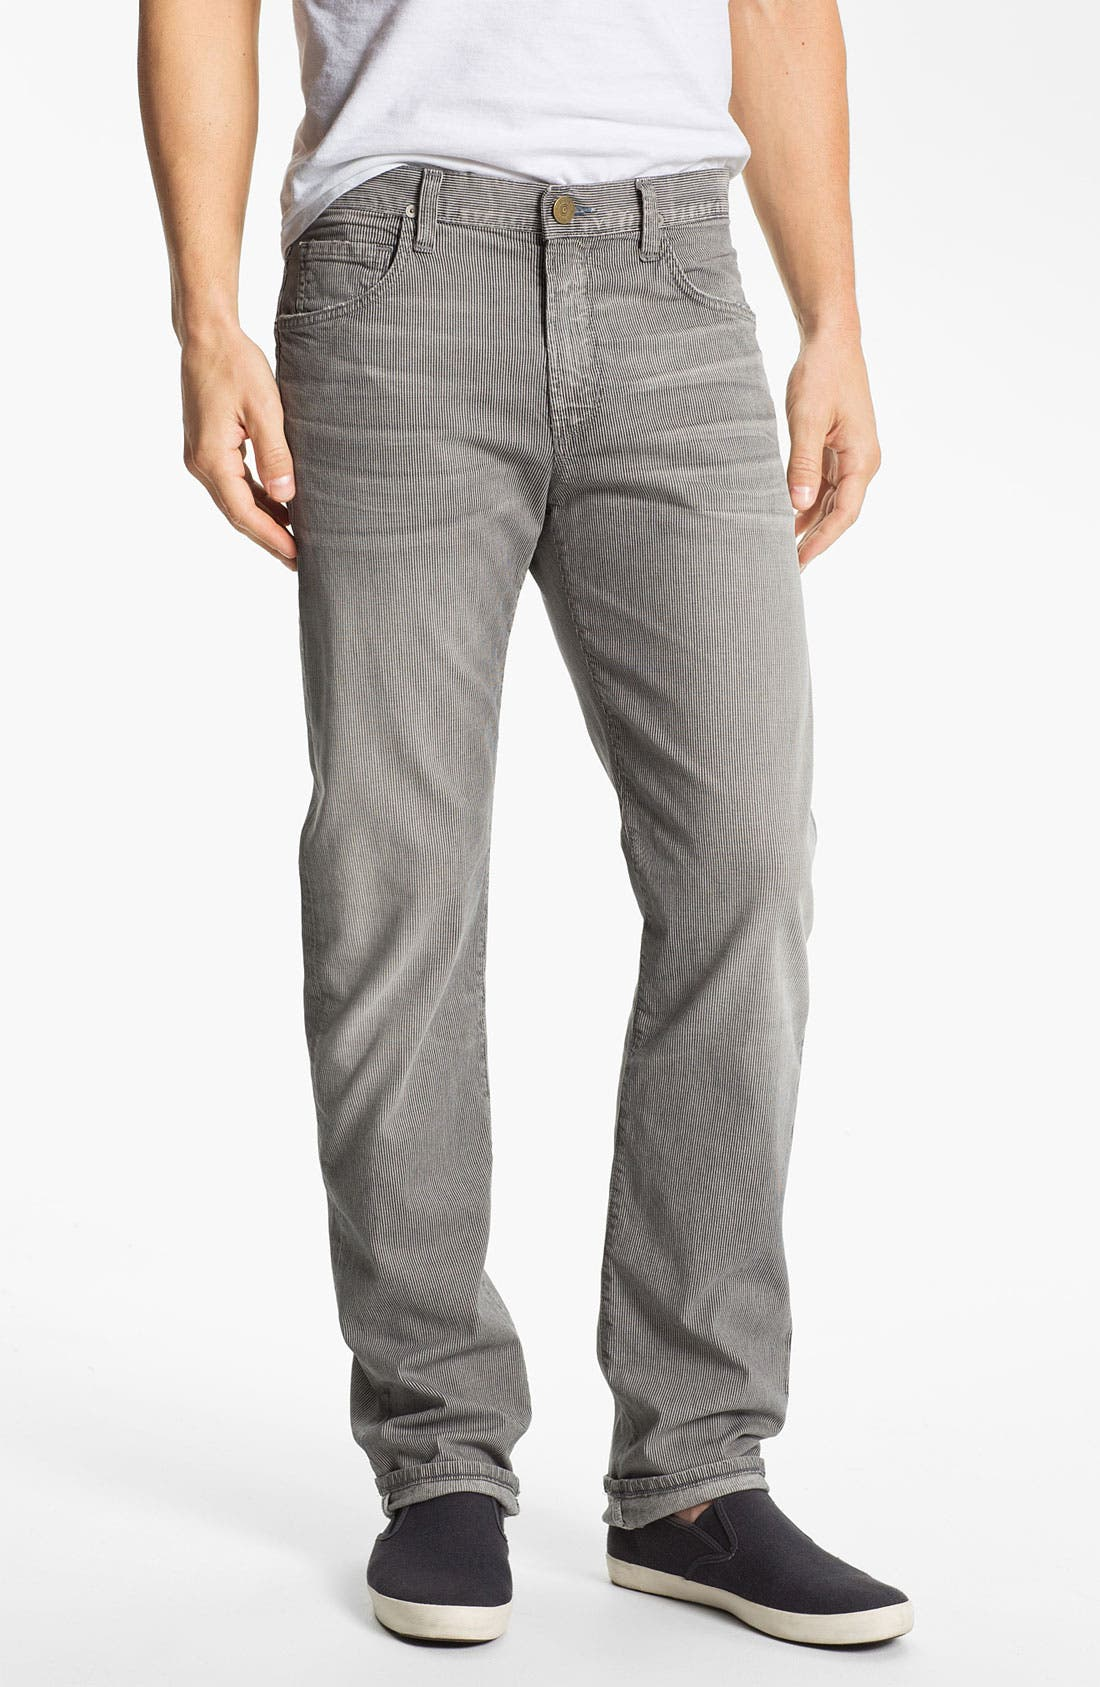 Main Image - Citizens of Humanity 'Core' Stripe Slim Fit Jeans (Denzel) (Online Only)